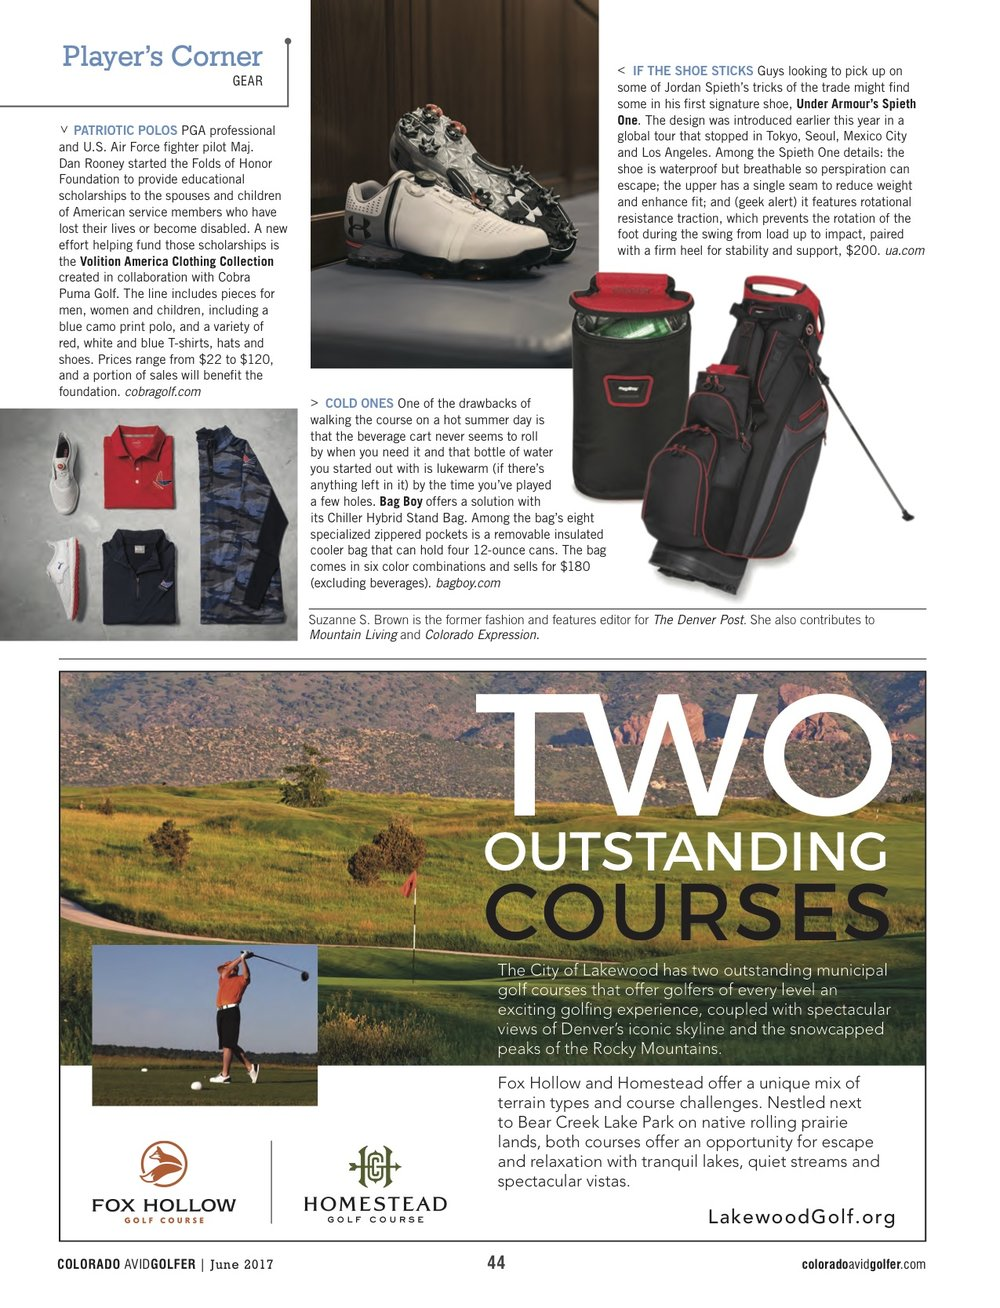 Gift ideas for Father's Day in Colorado Avid Golfer magazine June 2017.